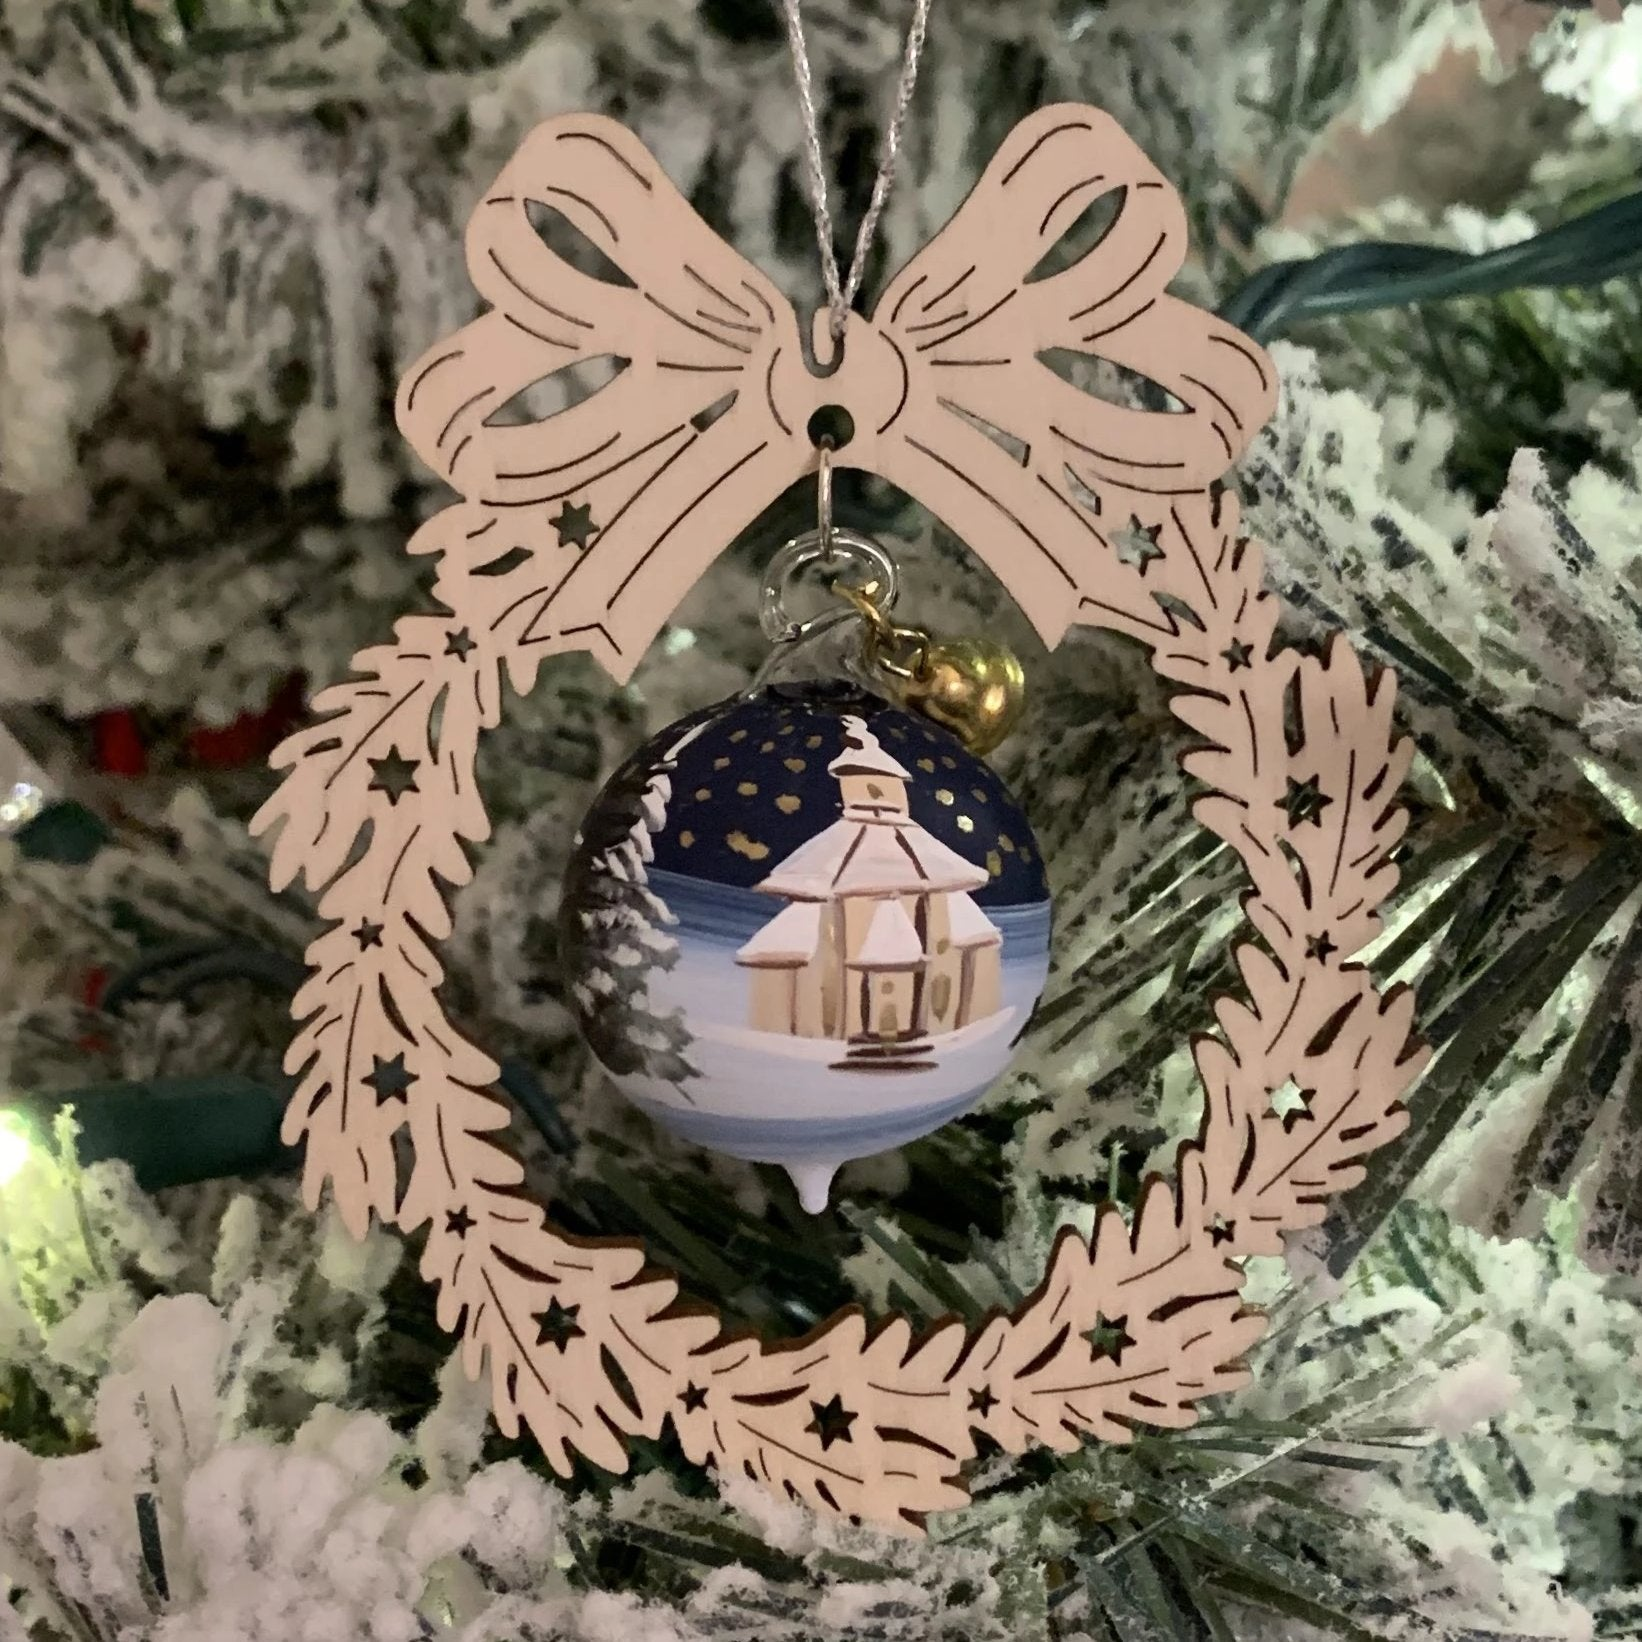 Elke's Wreath (Church on Christmas Eve) - Christmas tree decoration